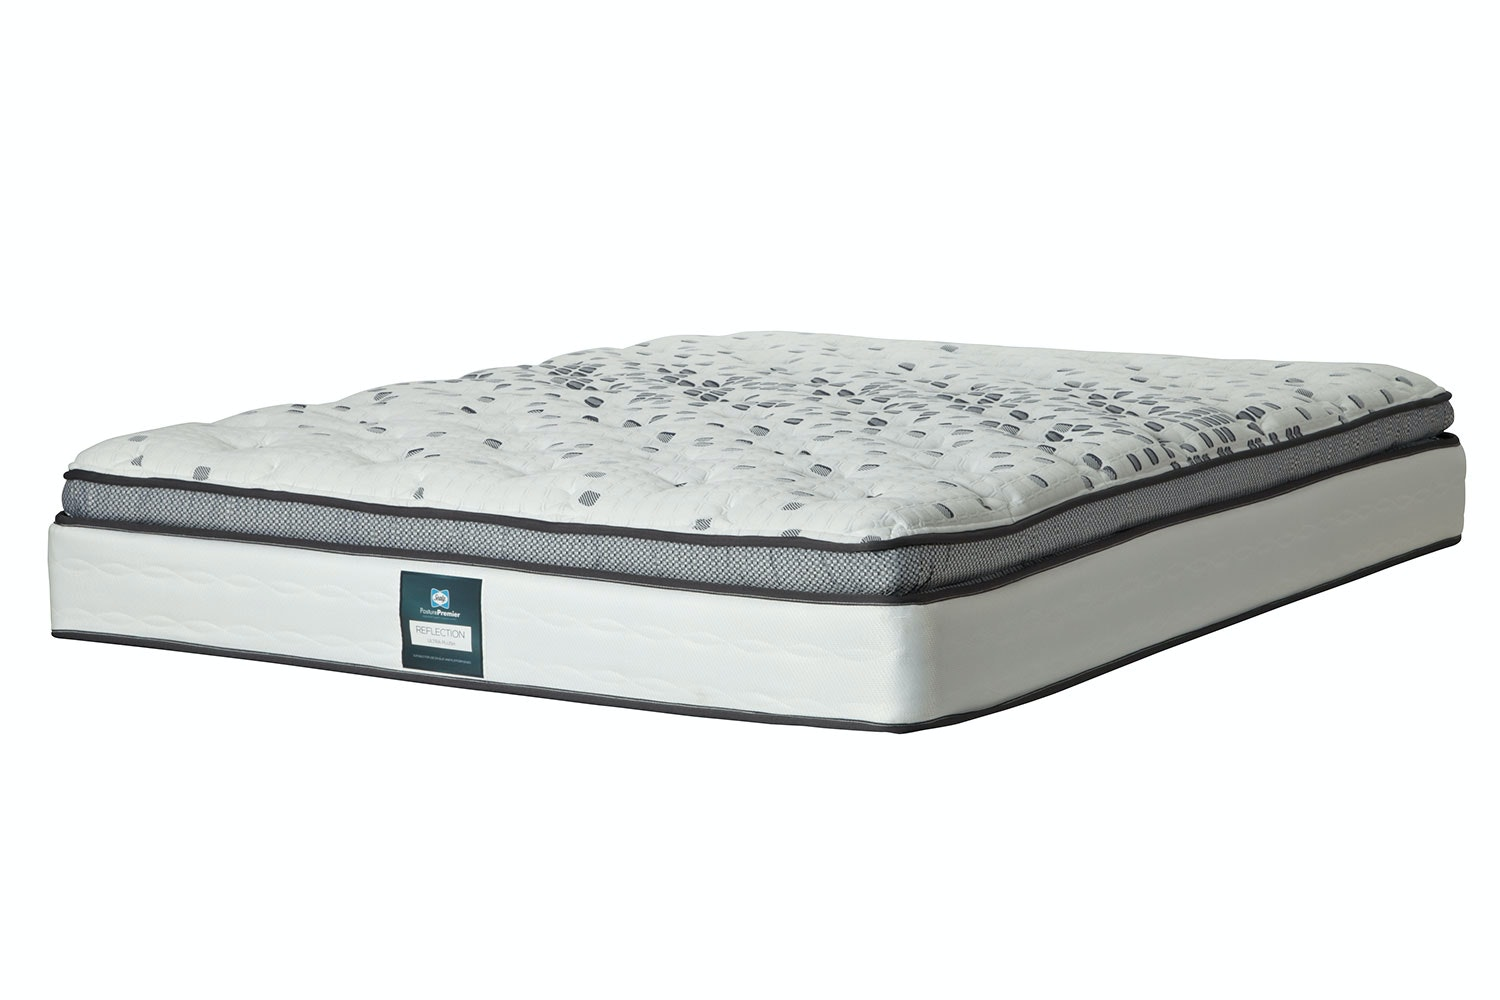 Spinecare Reflection Plush Mattress